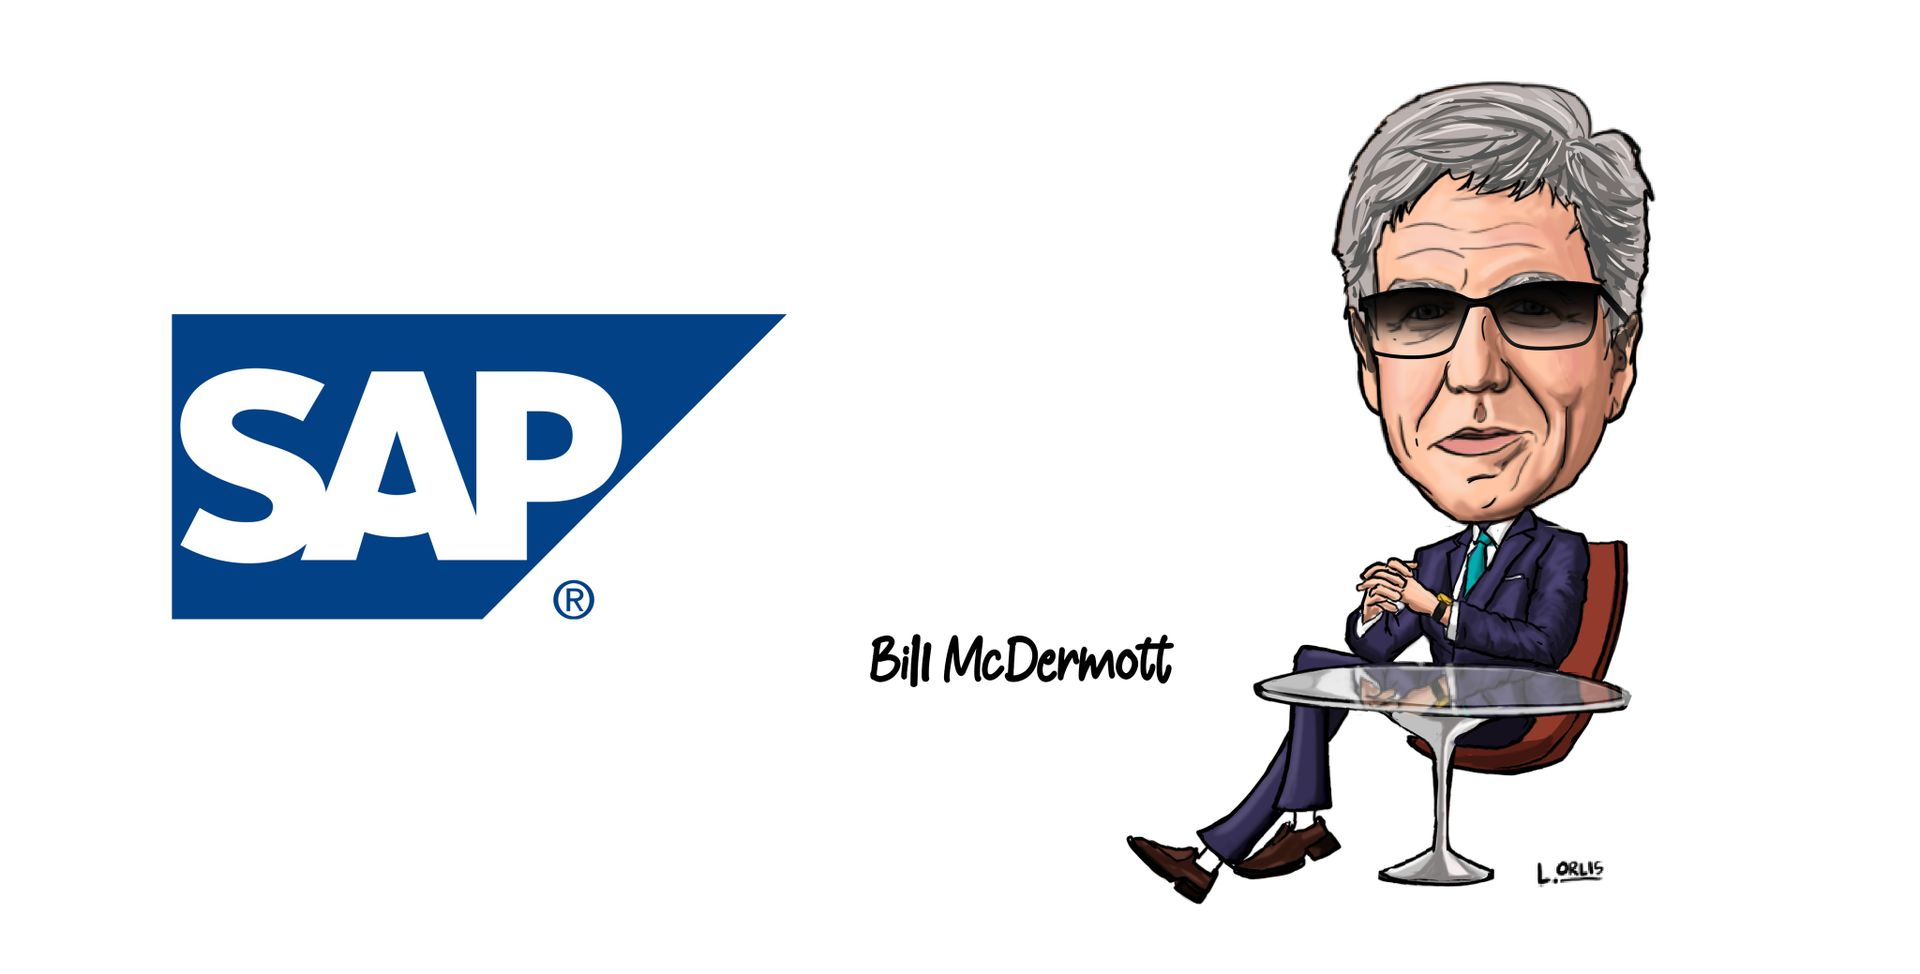 cartoon of bill mcdermott, ceo of sap